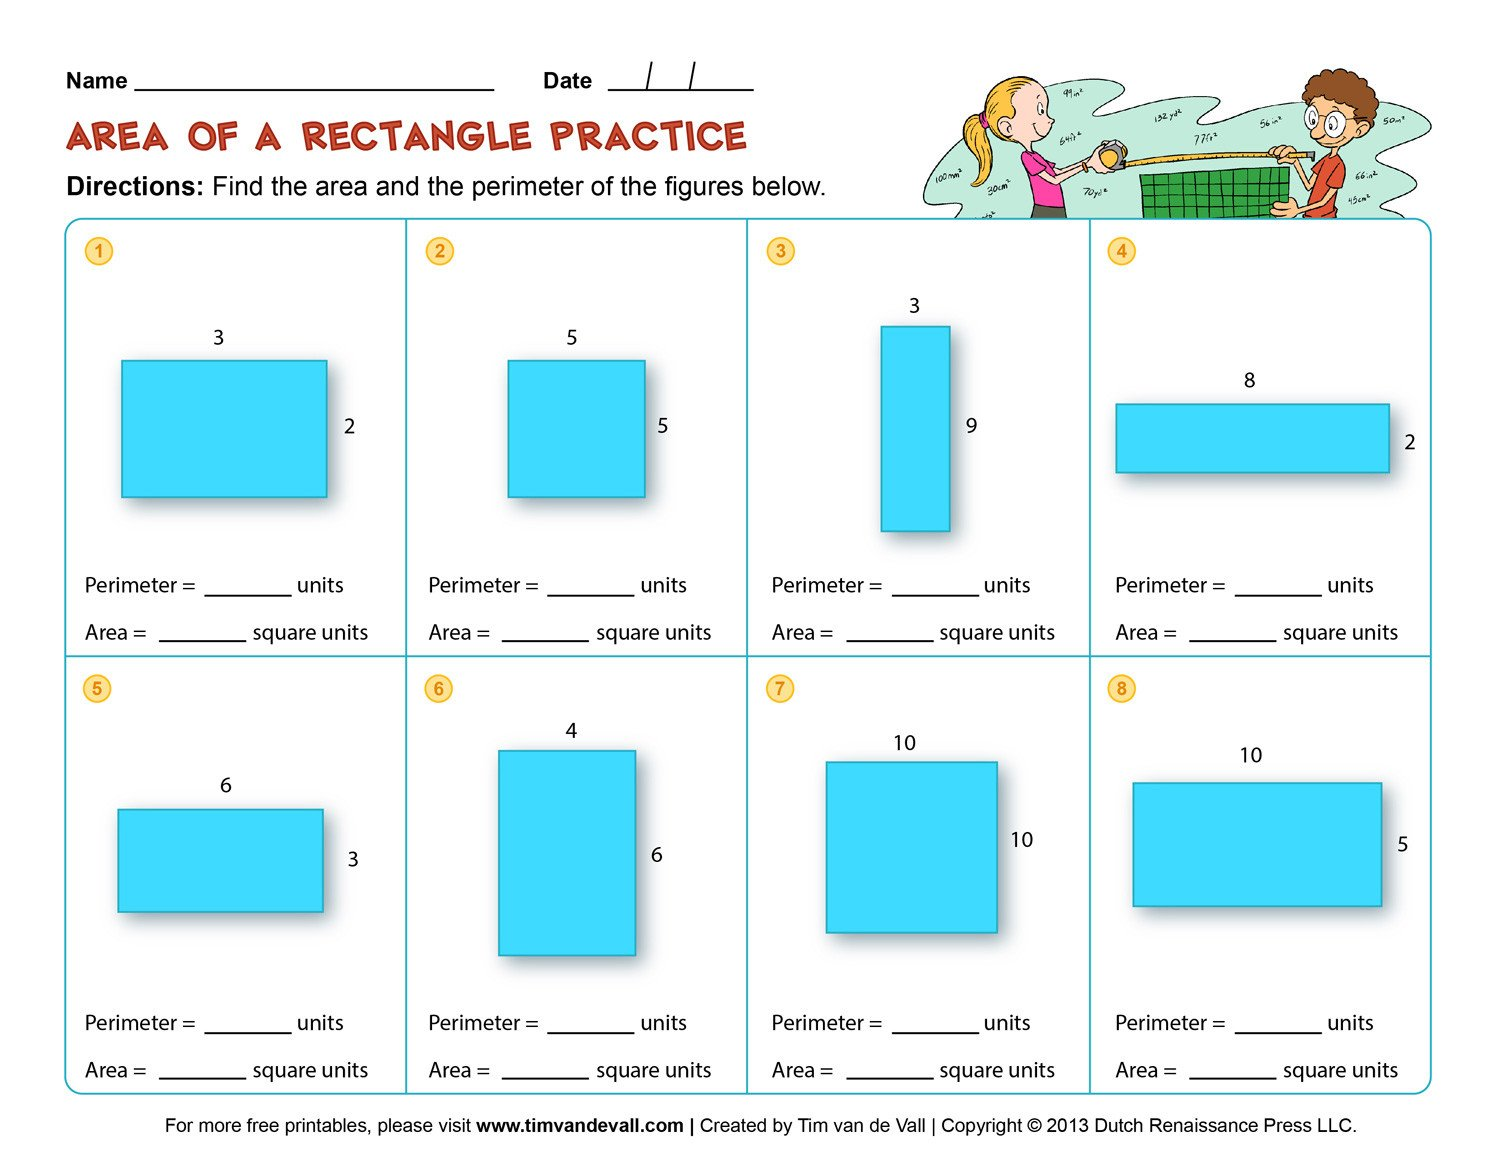 3rd Grade Perimeter Worksheets area Rectangles and Squares Worksheets 4th Grade